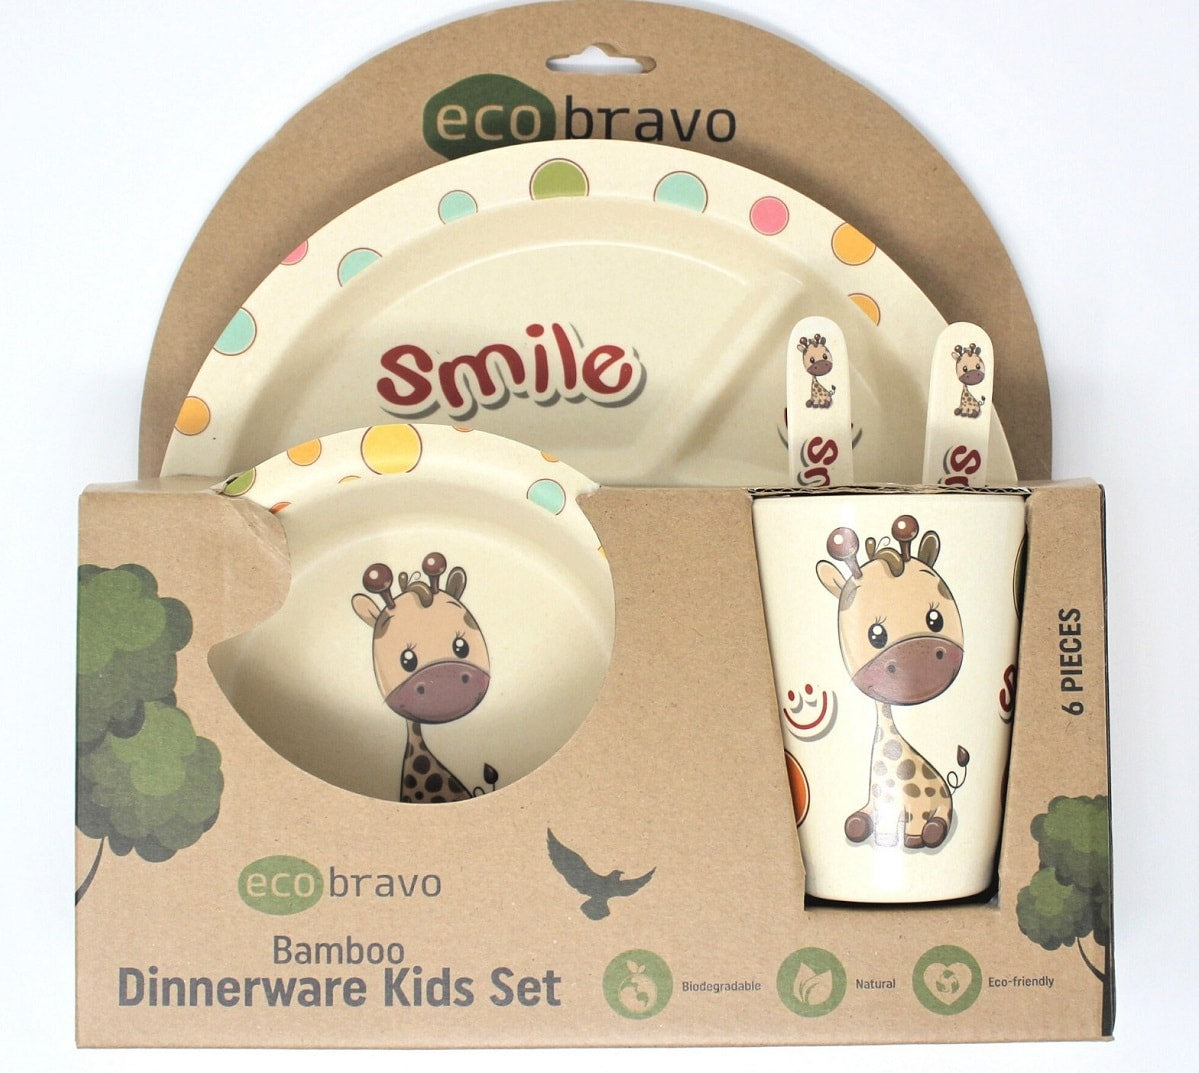 Bamboo Dinnerware Kids Set